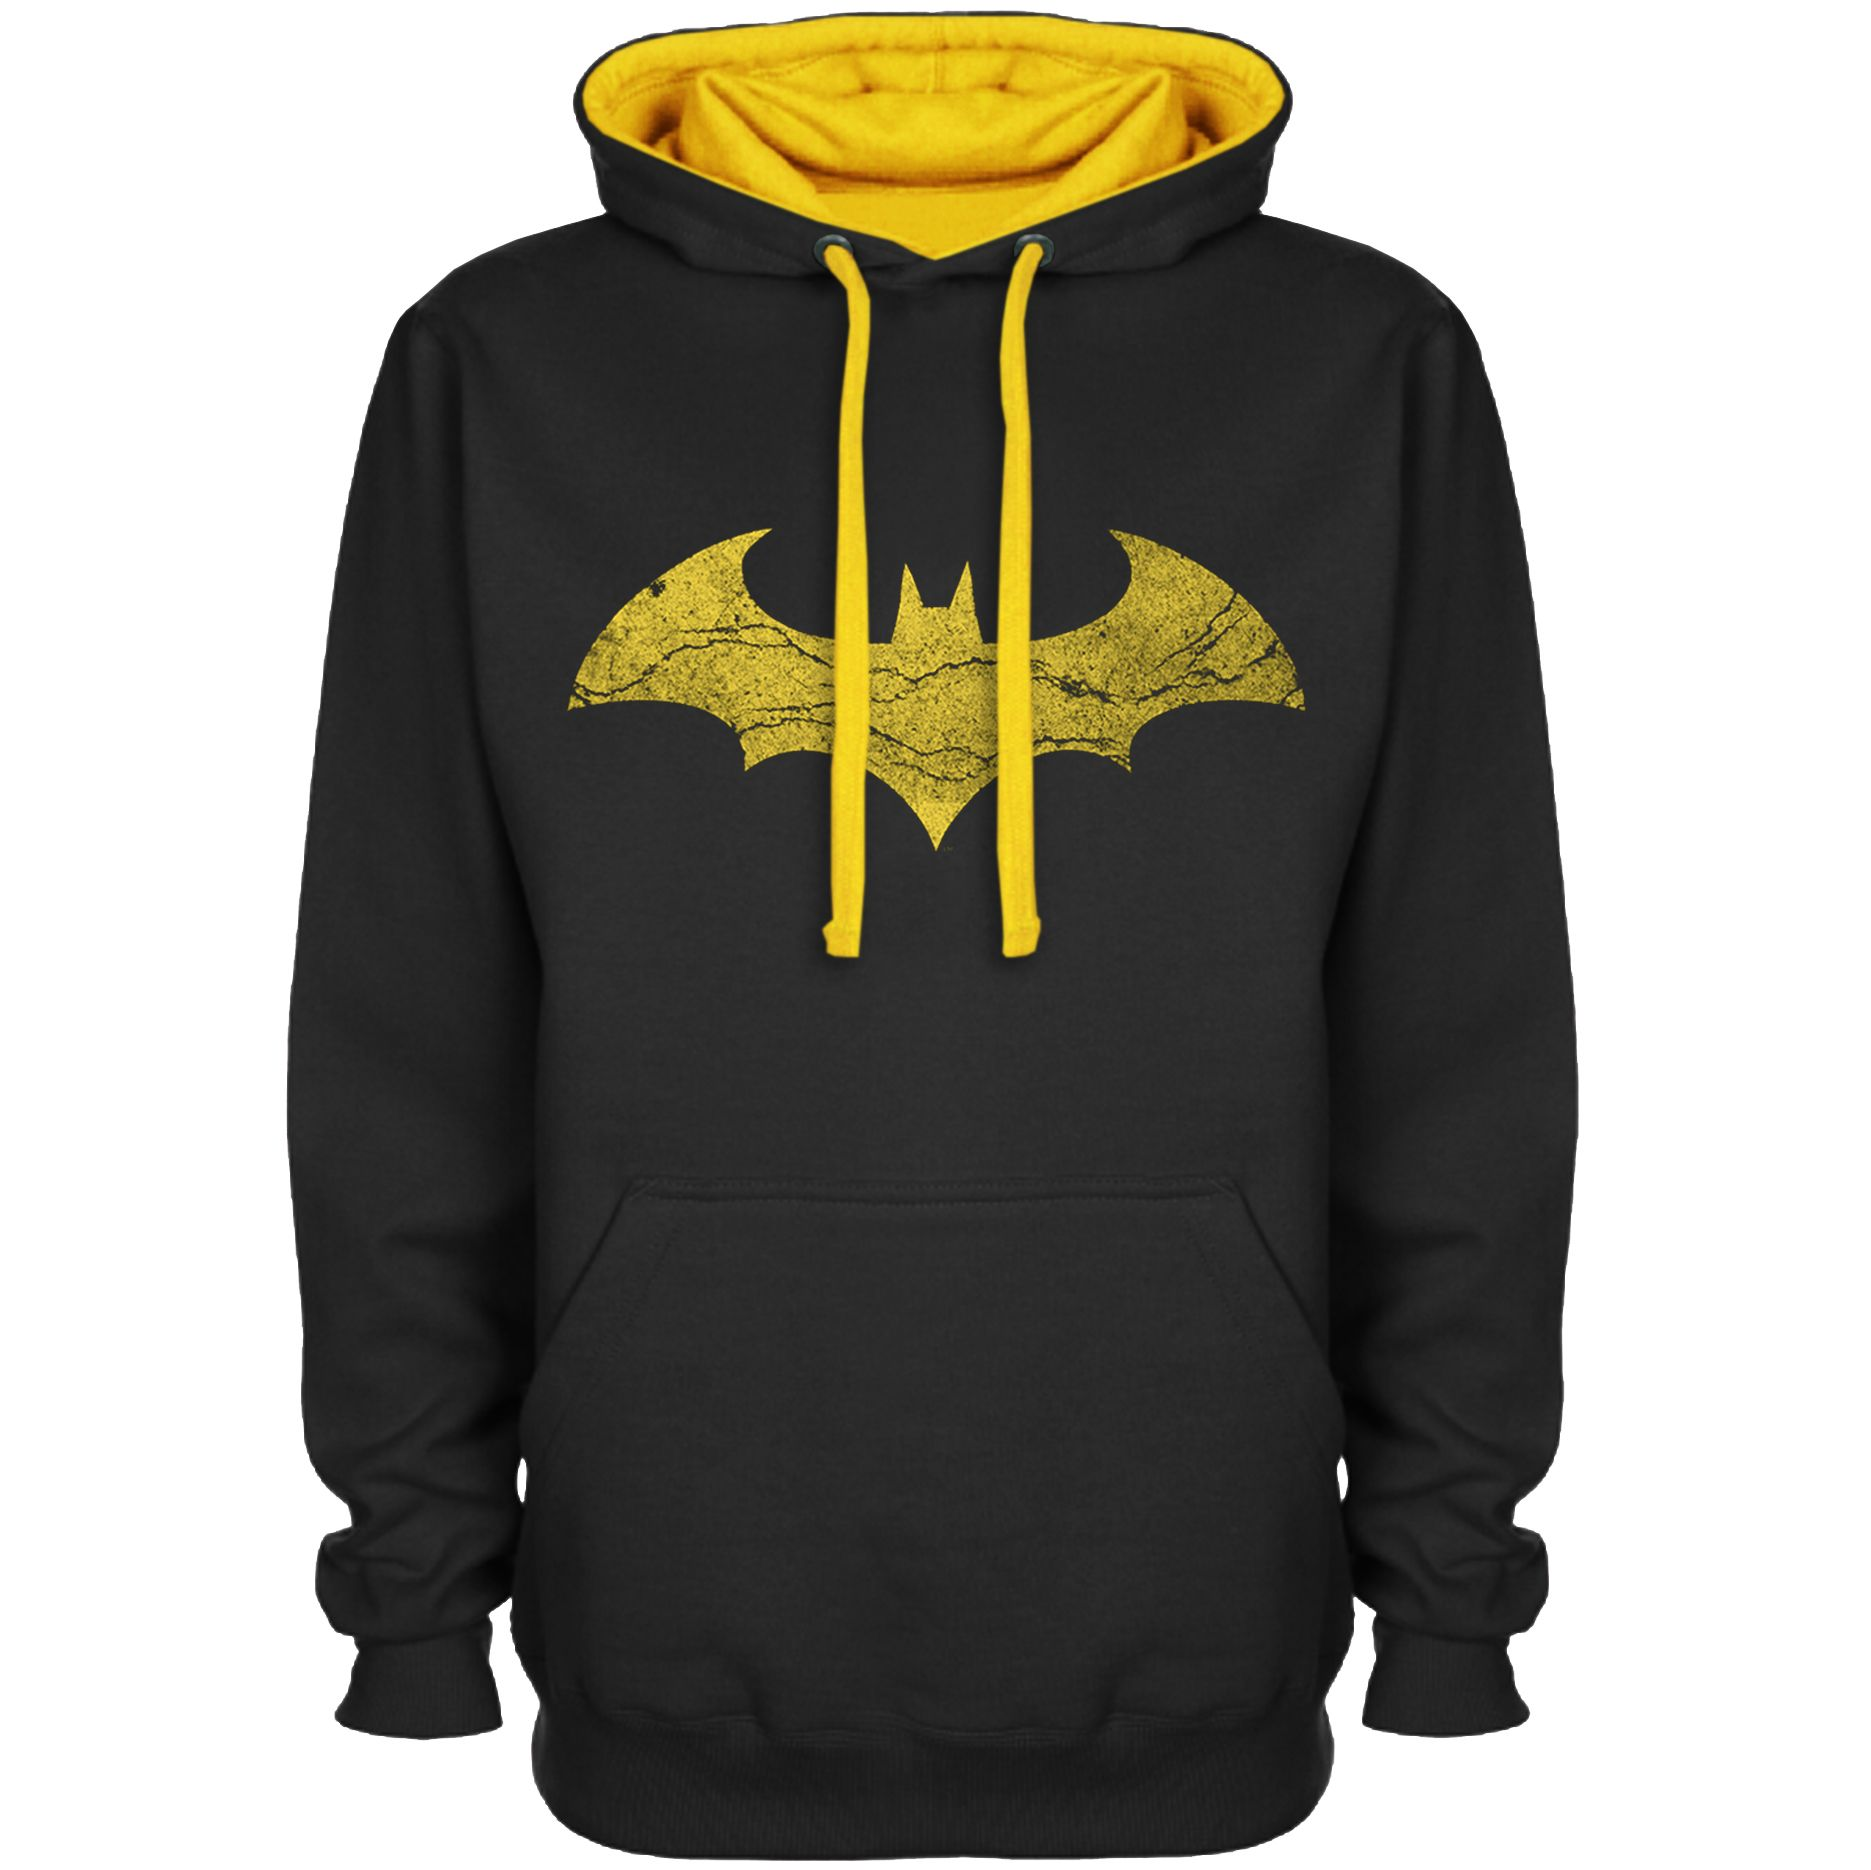 Batman - Clothing. Batman Themes. Batman - Clothing. Store availability. Search your store by entering zip code or city, state. Go. Sort. Best match Product - Dc comics Men's batman glow in the dark logo graphic tee. Product Image. Price $ 9. 97 - $ Product Title.